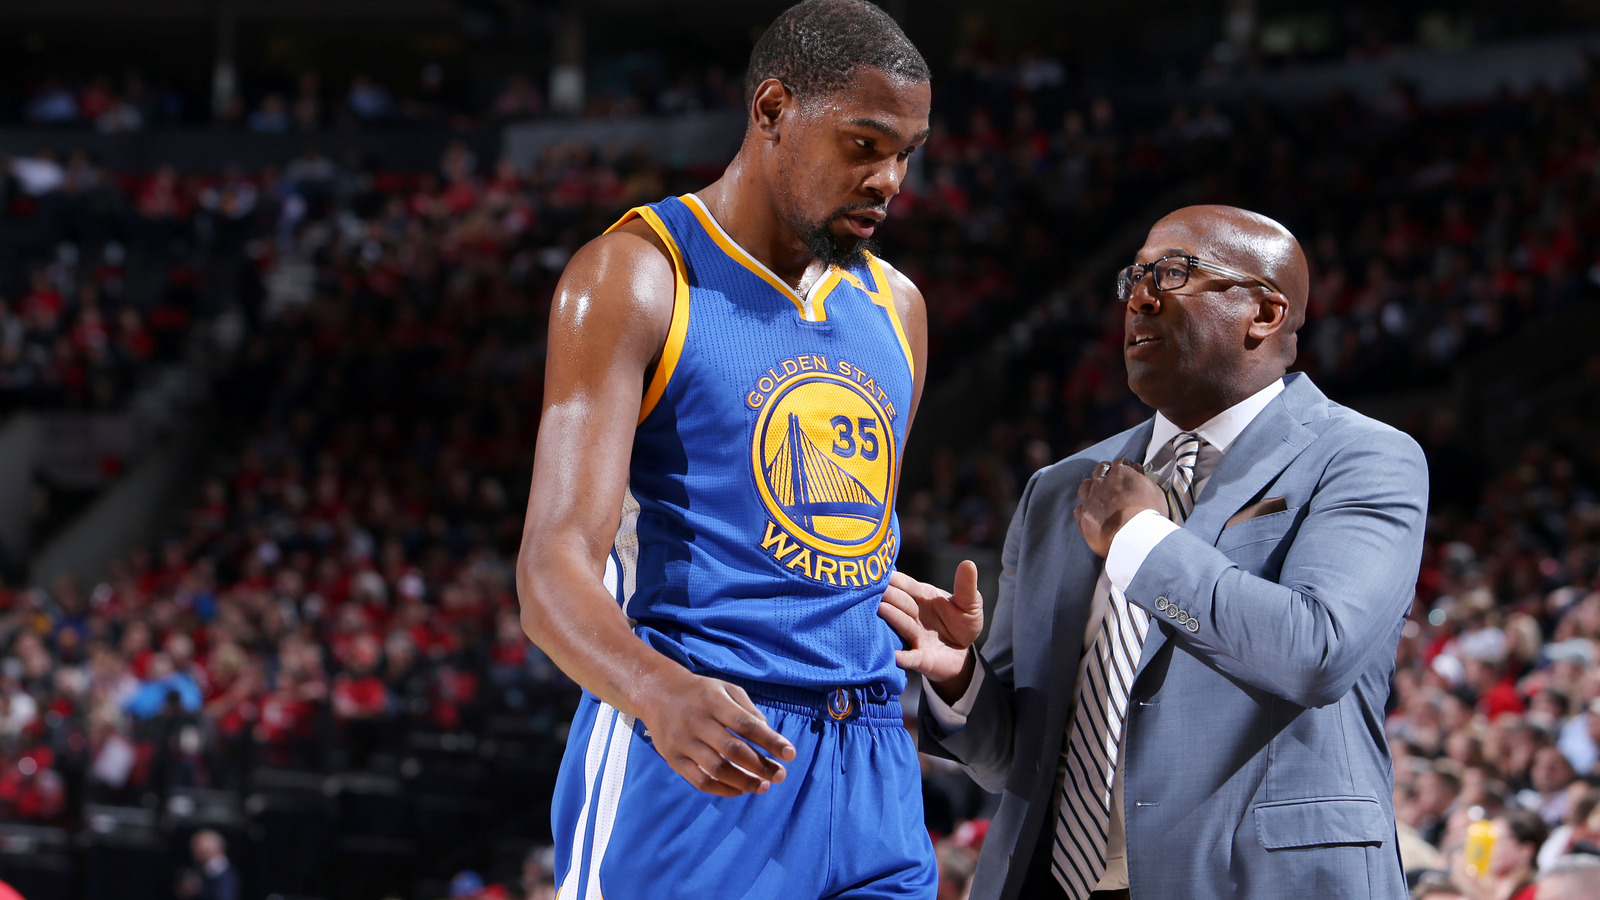 La clippers the impact of blake griffins surgery on the team foxsports com - Mike Brown And Kevin Durant Of The Golden State Warriors Talk During The Game Against The Portland Trail Blazers During Game Four Of The Western Conference